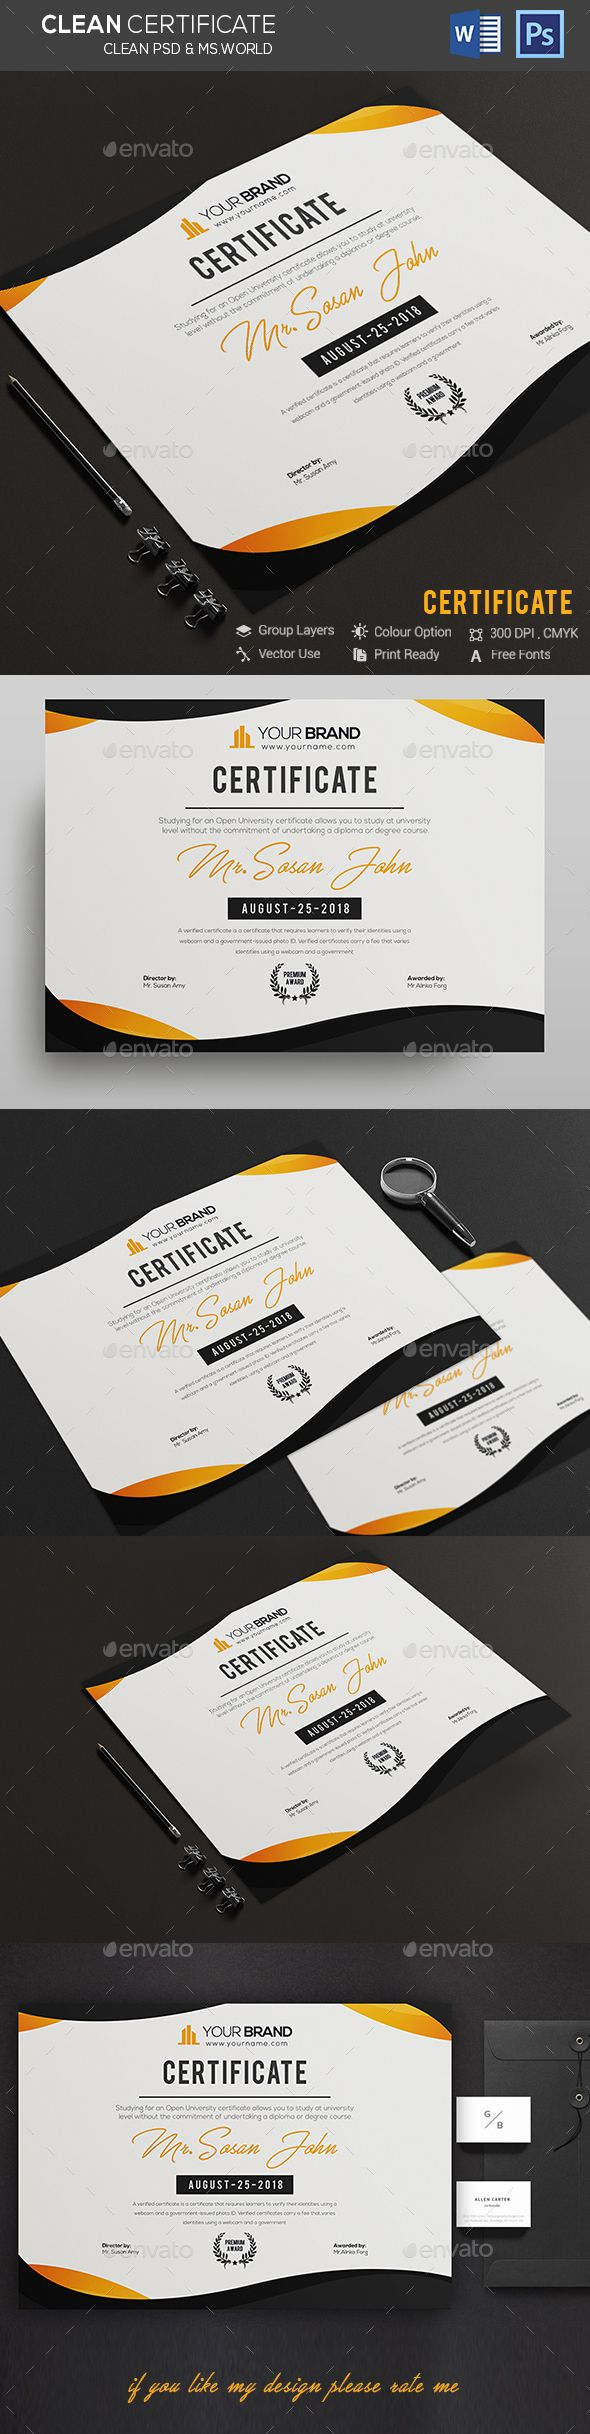 Certificate Certificate Template psd file and ms word file include Fully Clean Certificate A4 Paper Size With Bleeds Quick and easy to customize templates Any Size Changes Fully Group Layer Free Fonts Use Fully Vector